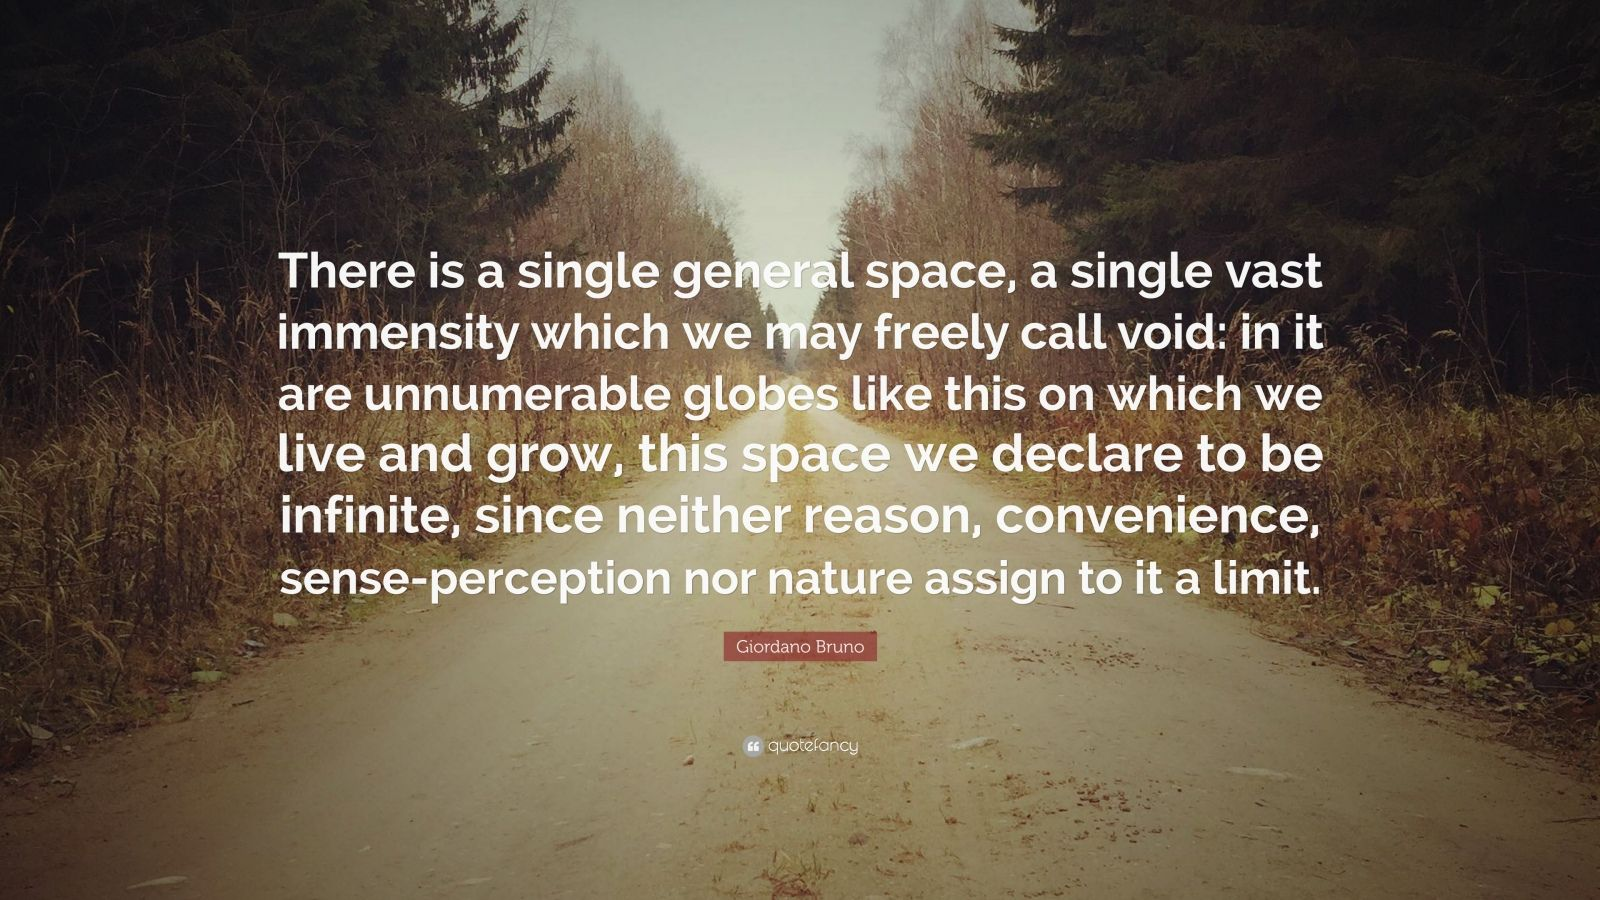 """Giordano Bruno Quote: """"There is a single general space, a single vast immensity which we may freely call void: in it are unnumerable globes like this on which we live and grow, this space we declare to be infinite, since neither reason, convenience, sense-perception nor nature assign to it a limit."""""""